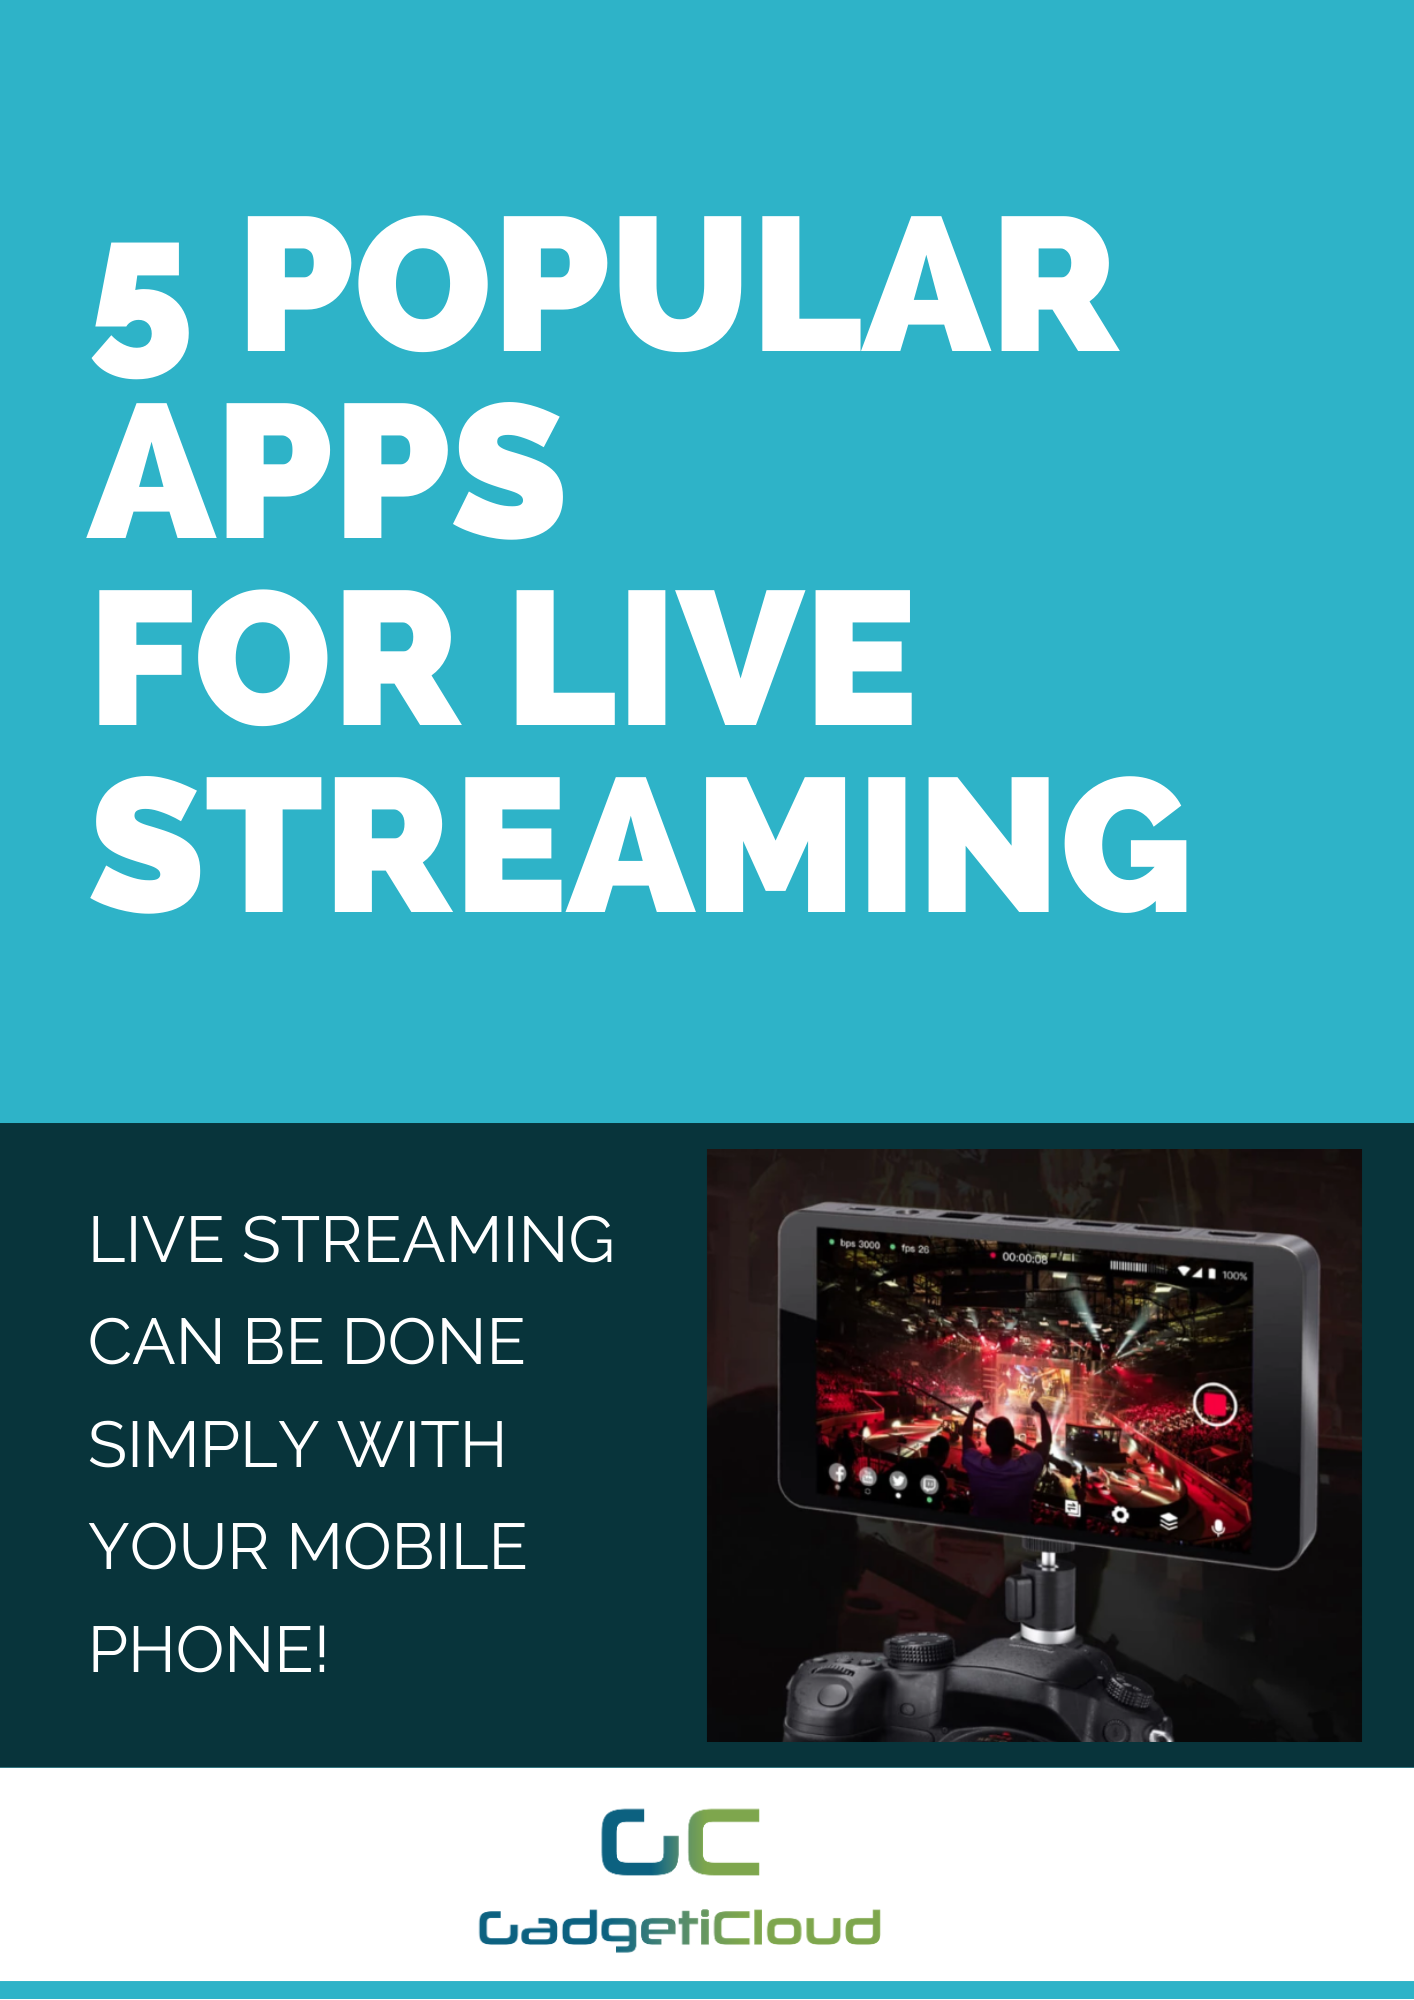 5 Popular Apps For Live Streaming Streaming Live Streaming Popular Apps